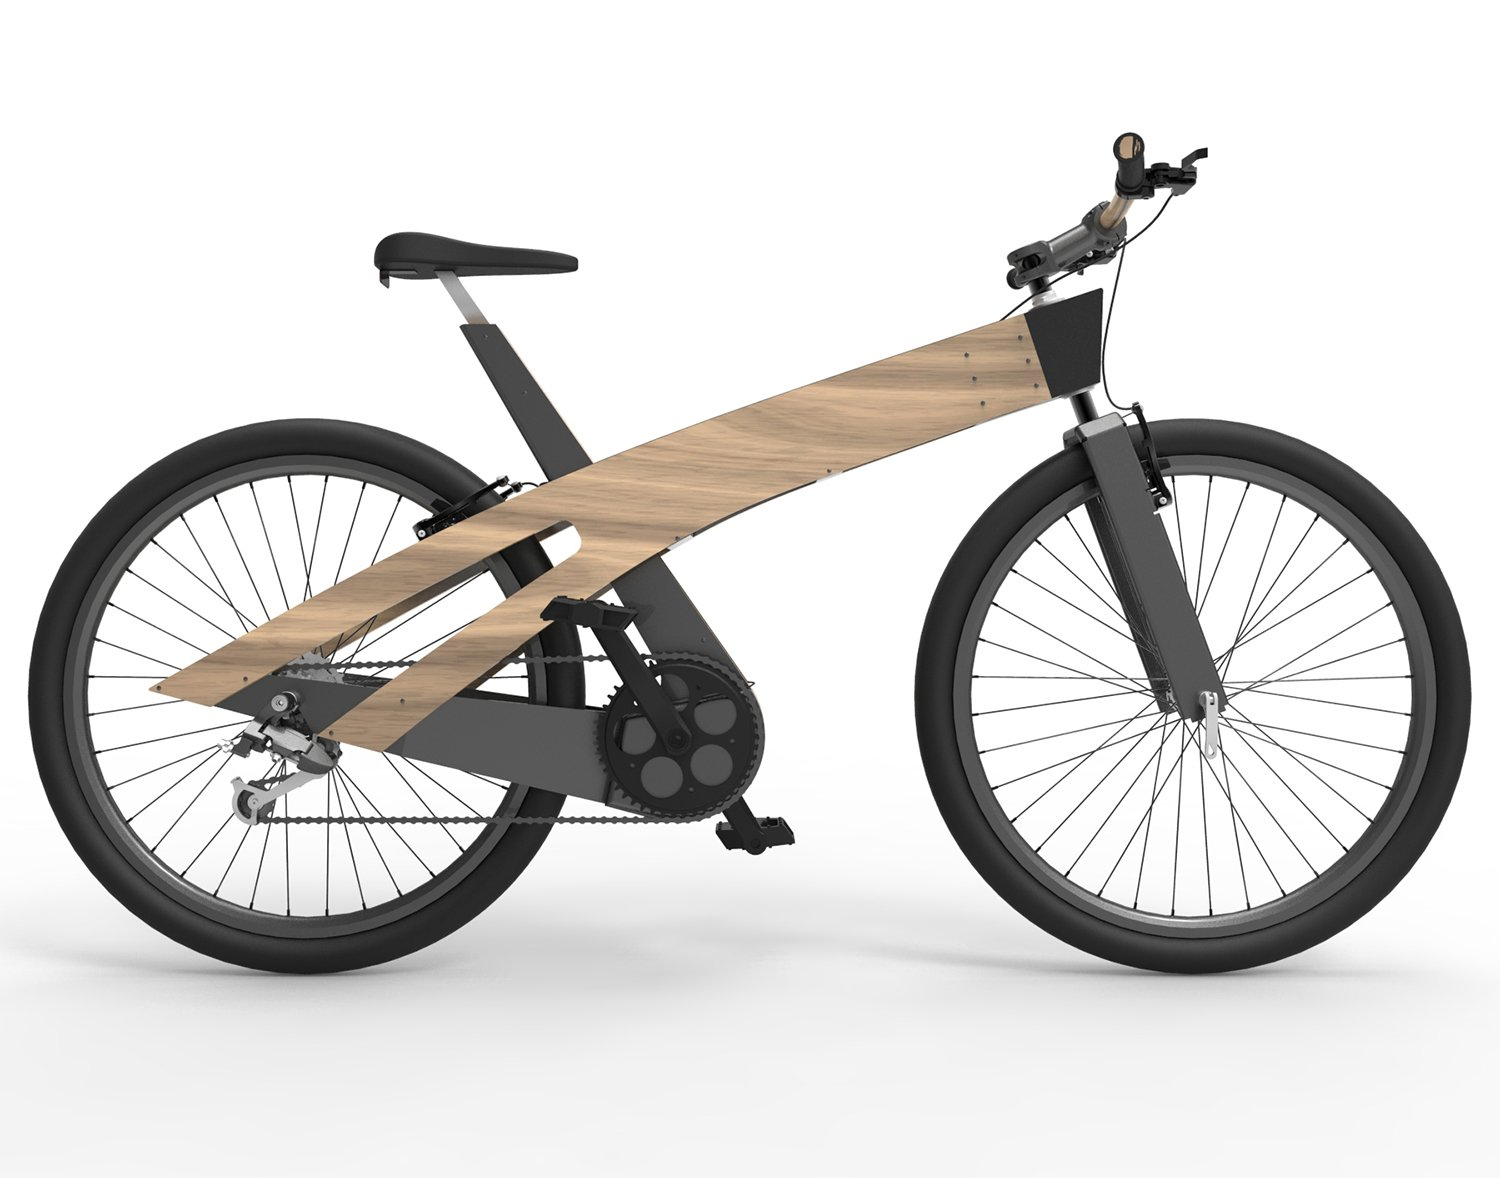 Lignum Nature Friendly E Bike by Yunus Emre Pektas